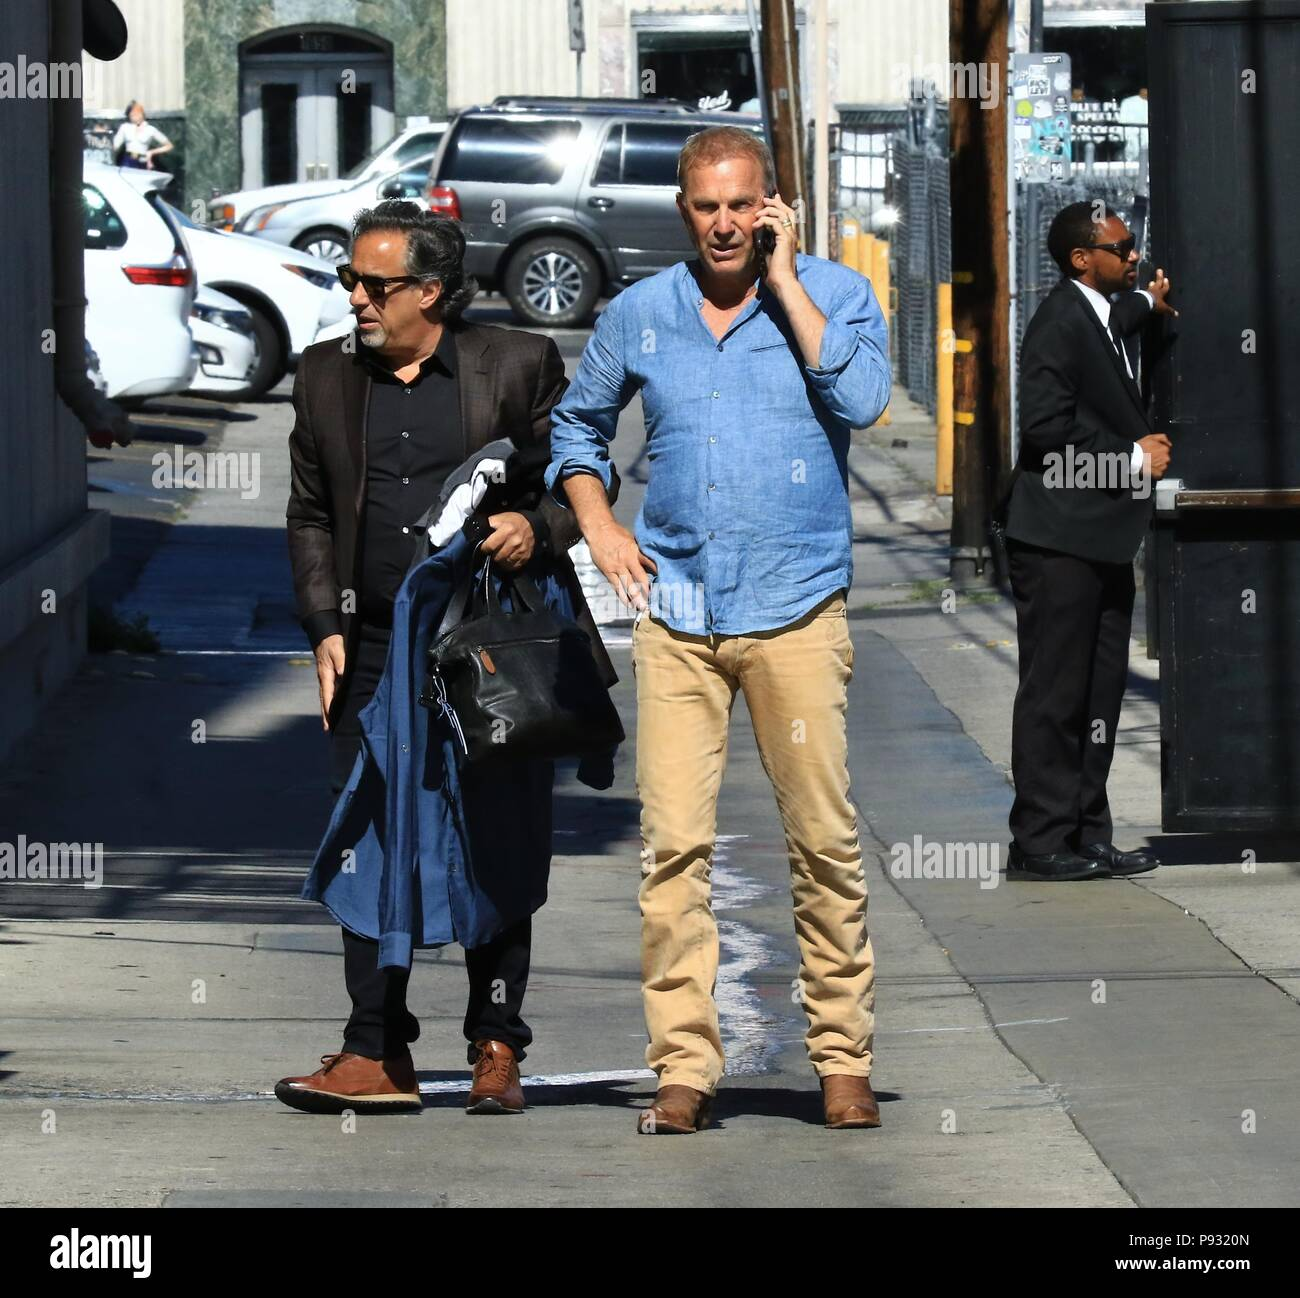 Celebrities At The Jimmy Kimmel Live Studios Featuring Kevin Costner Where Hollywood California United States When 12 Jun 2018 Credit Wenn Com Stock Photo Alamy They had two children, kevin and katherine. alamy